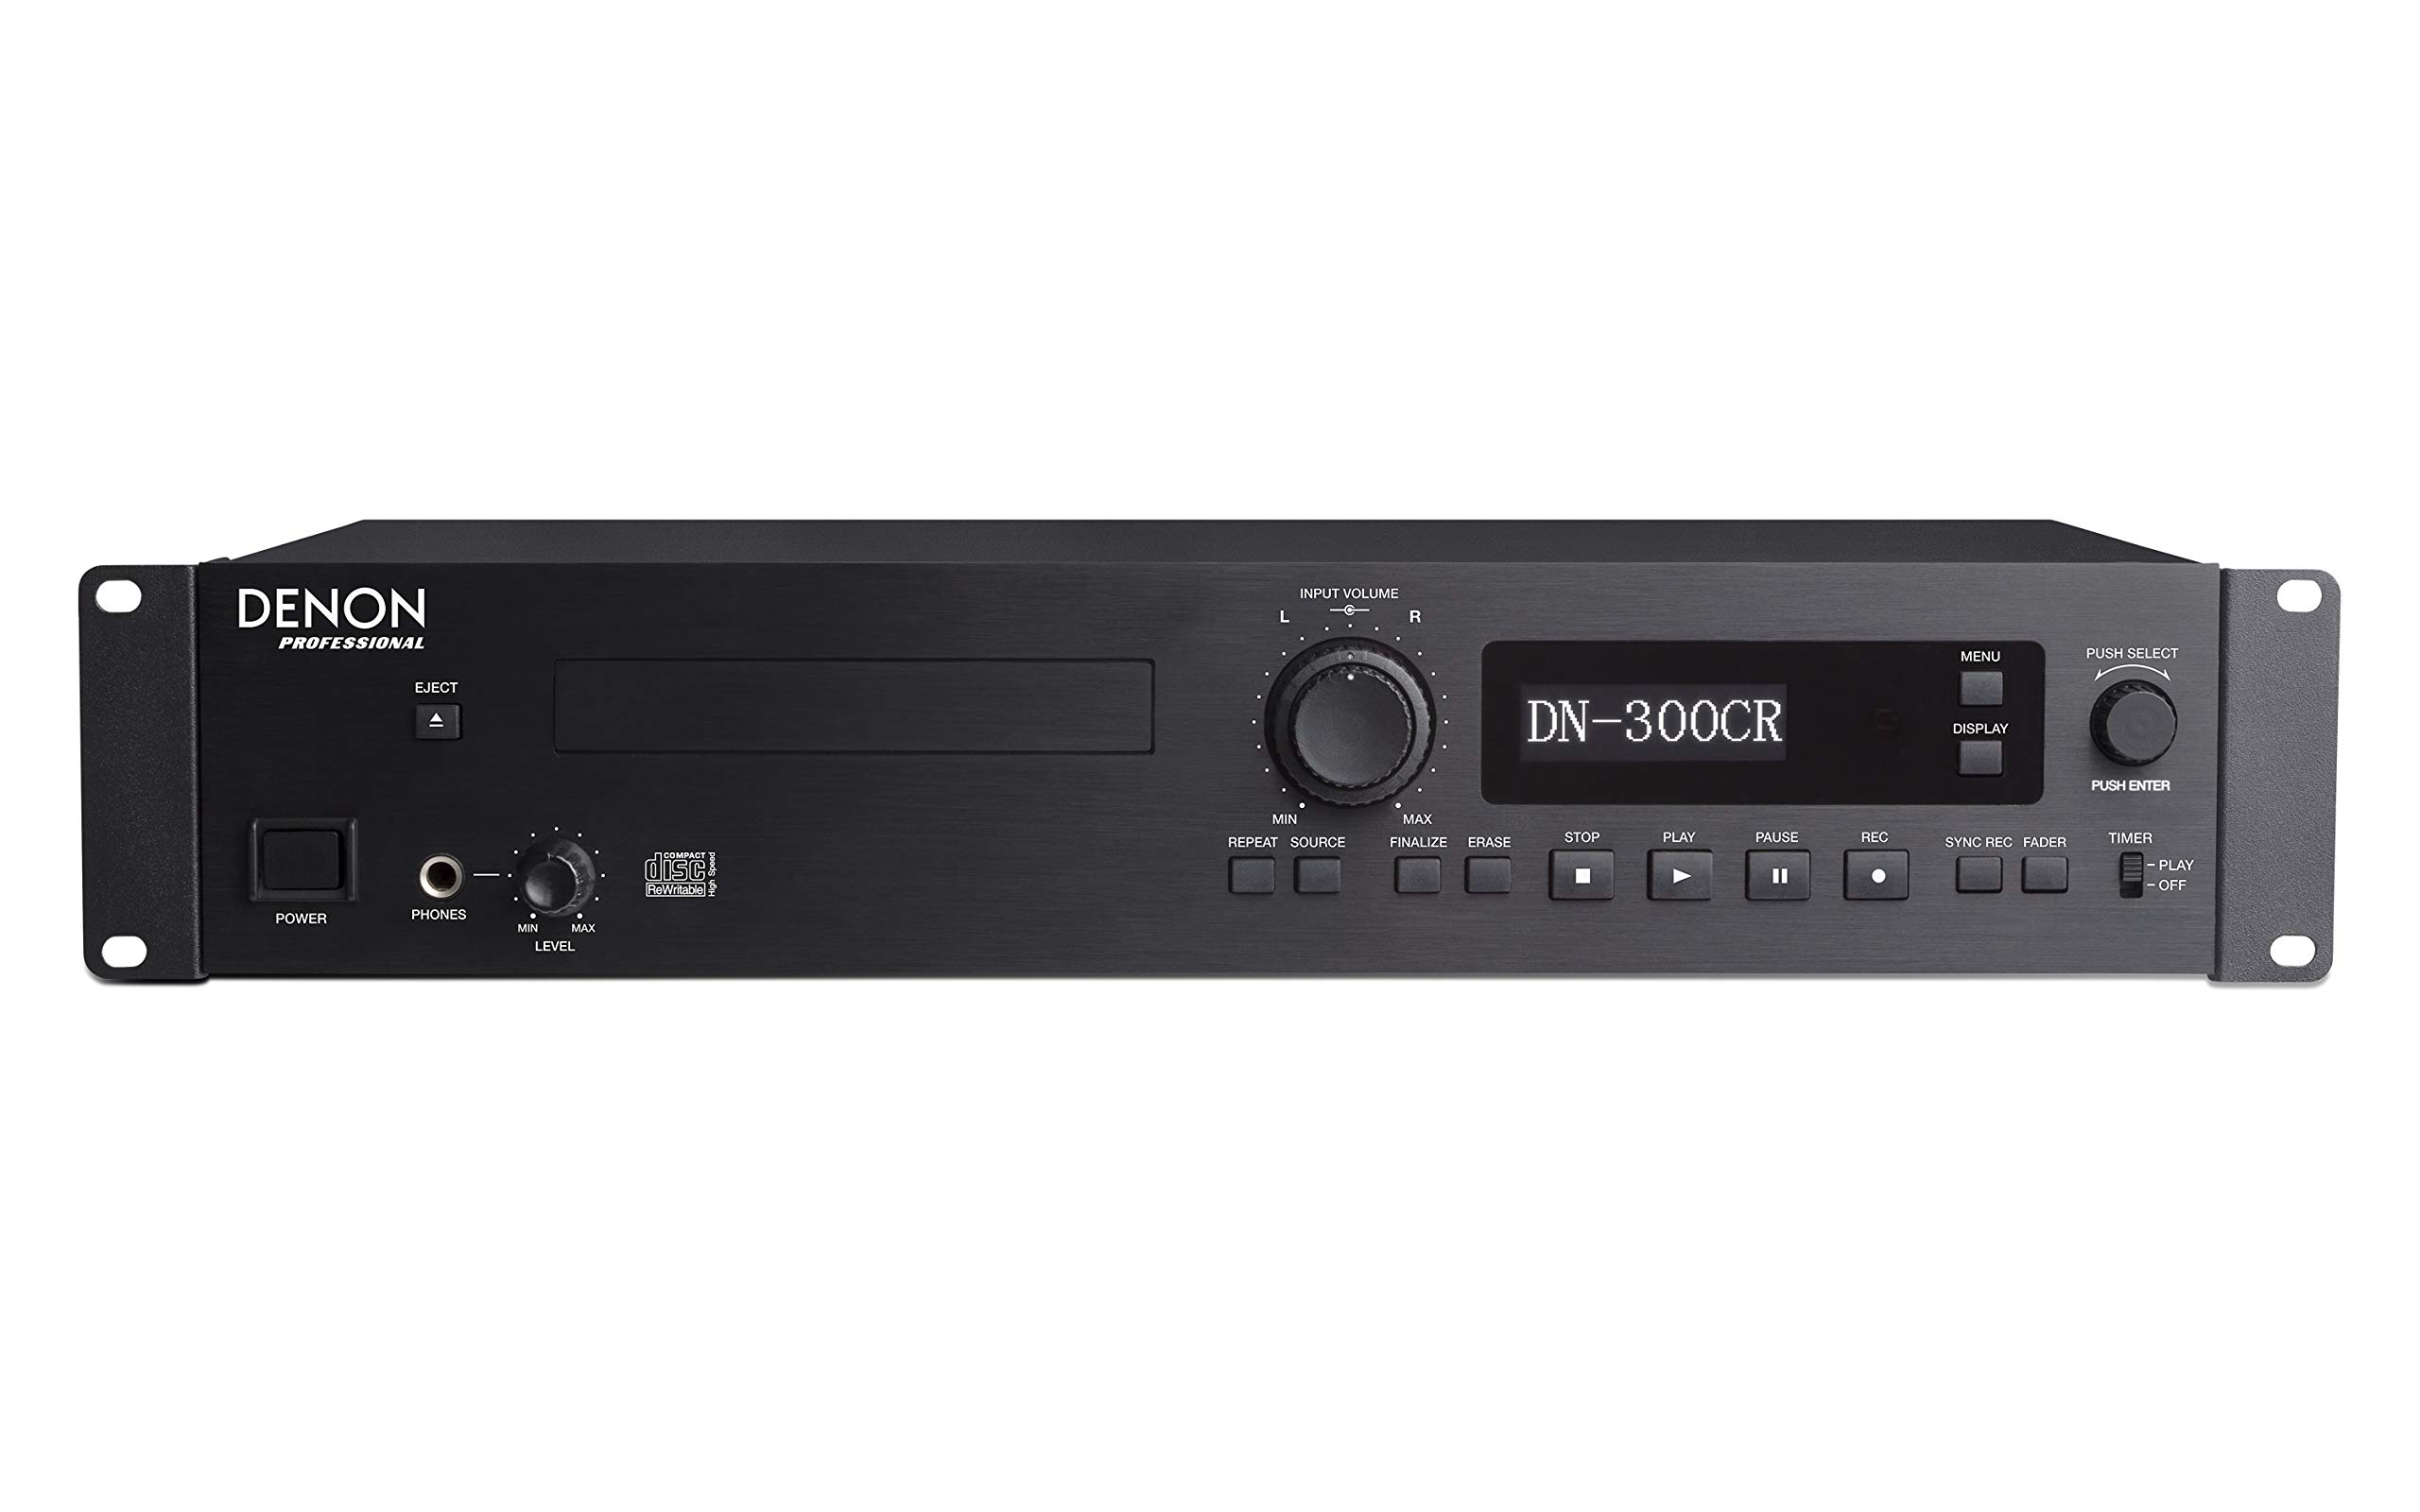 Denon Professional Rackmount Professional CD recorder/Player with Rugged Tray Transport DN300CRXUS